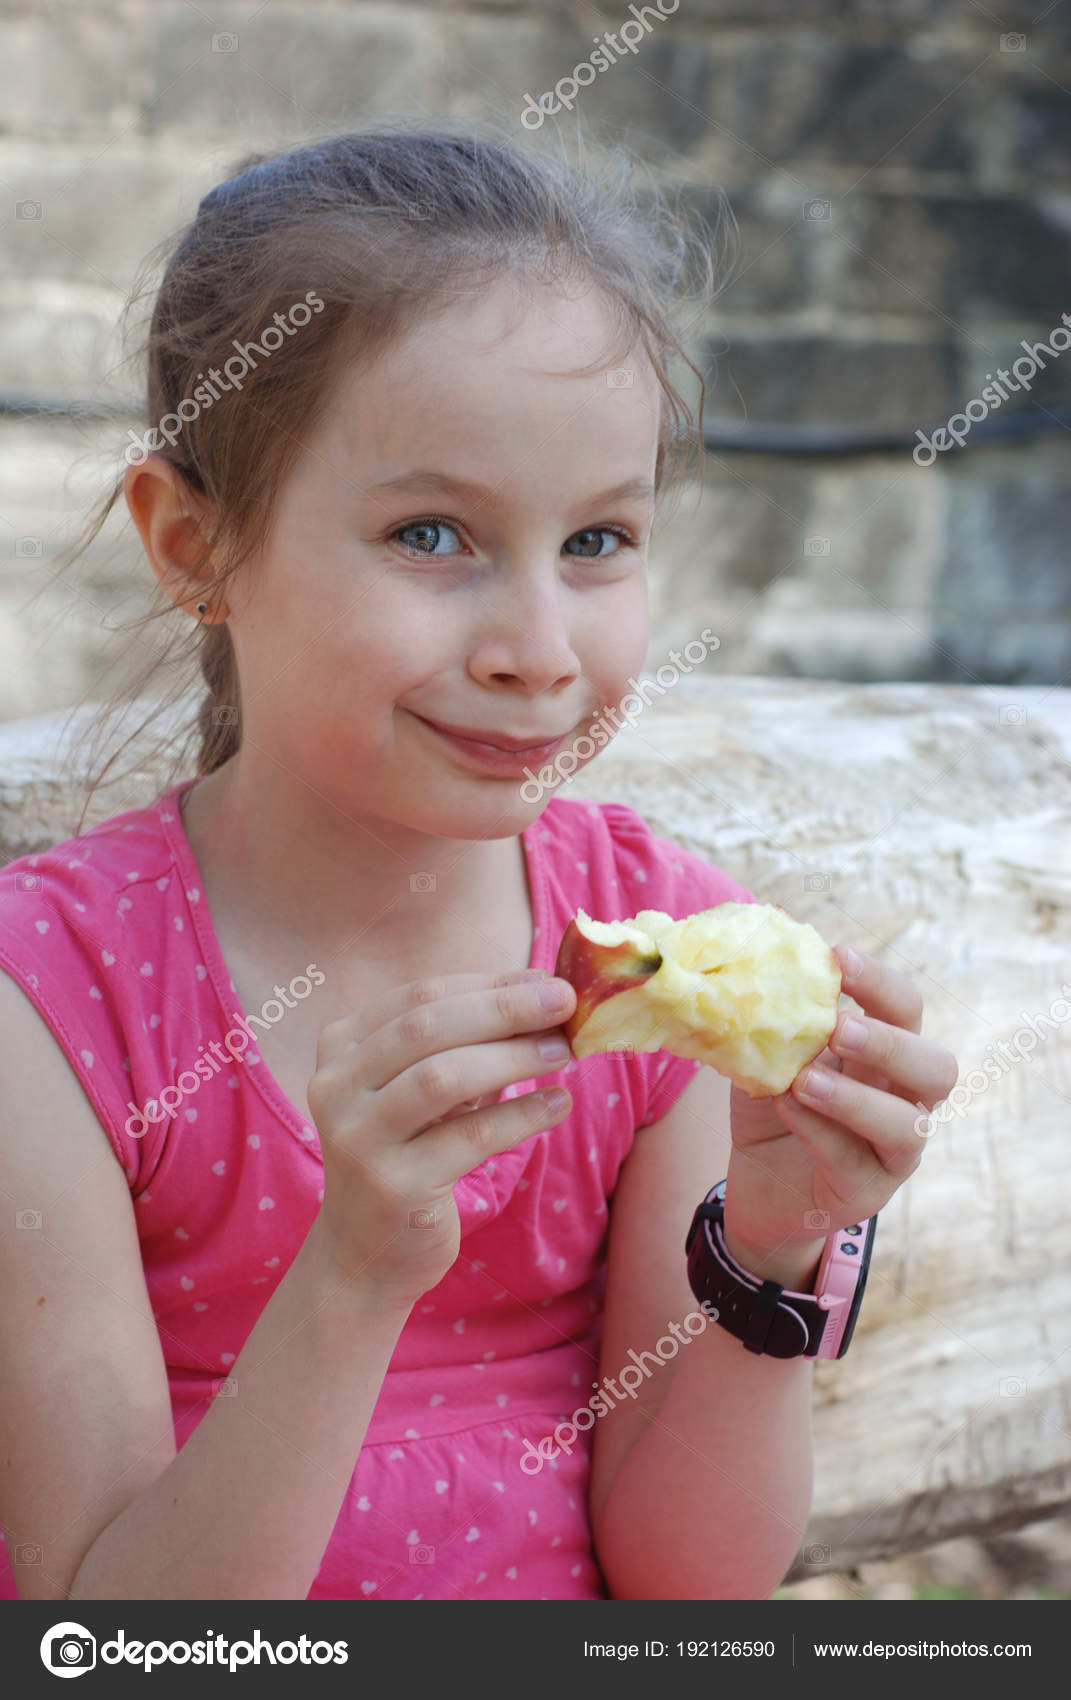 daaacc9571b Hungry Little Girl Portrait Eating Red Apple Outdoor Healthy Snack for Kids  Bite the Fruit Apple